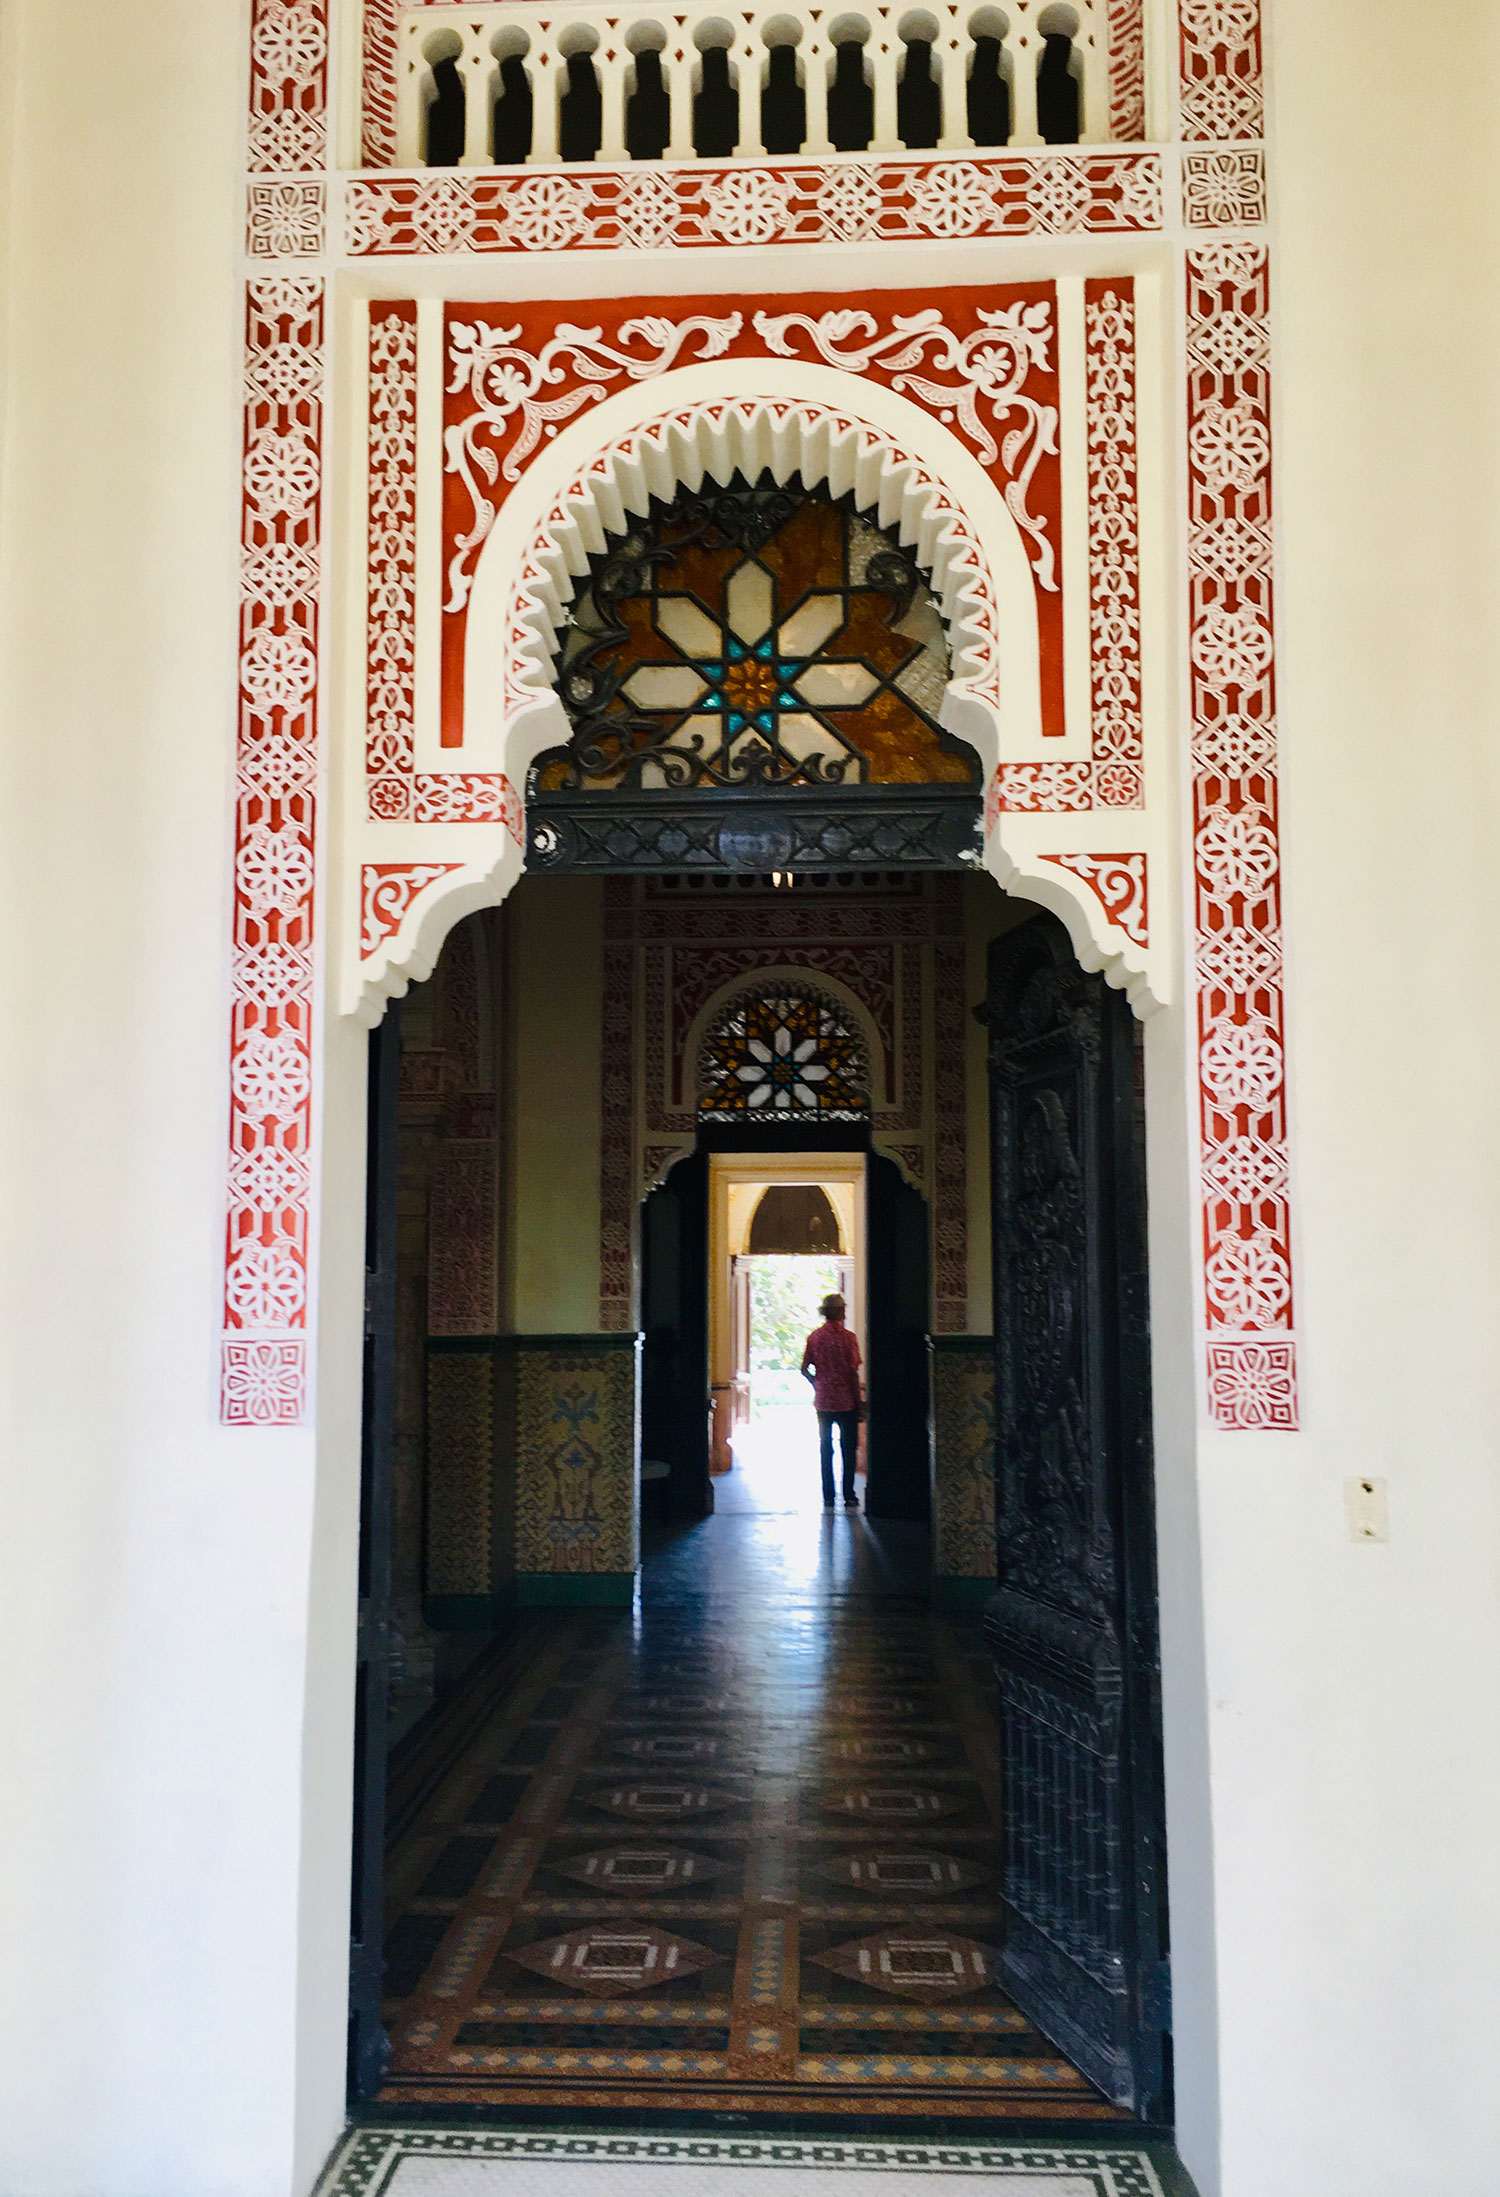 Each door has a different decoration style.